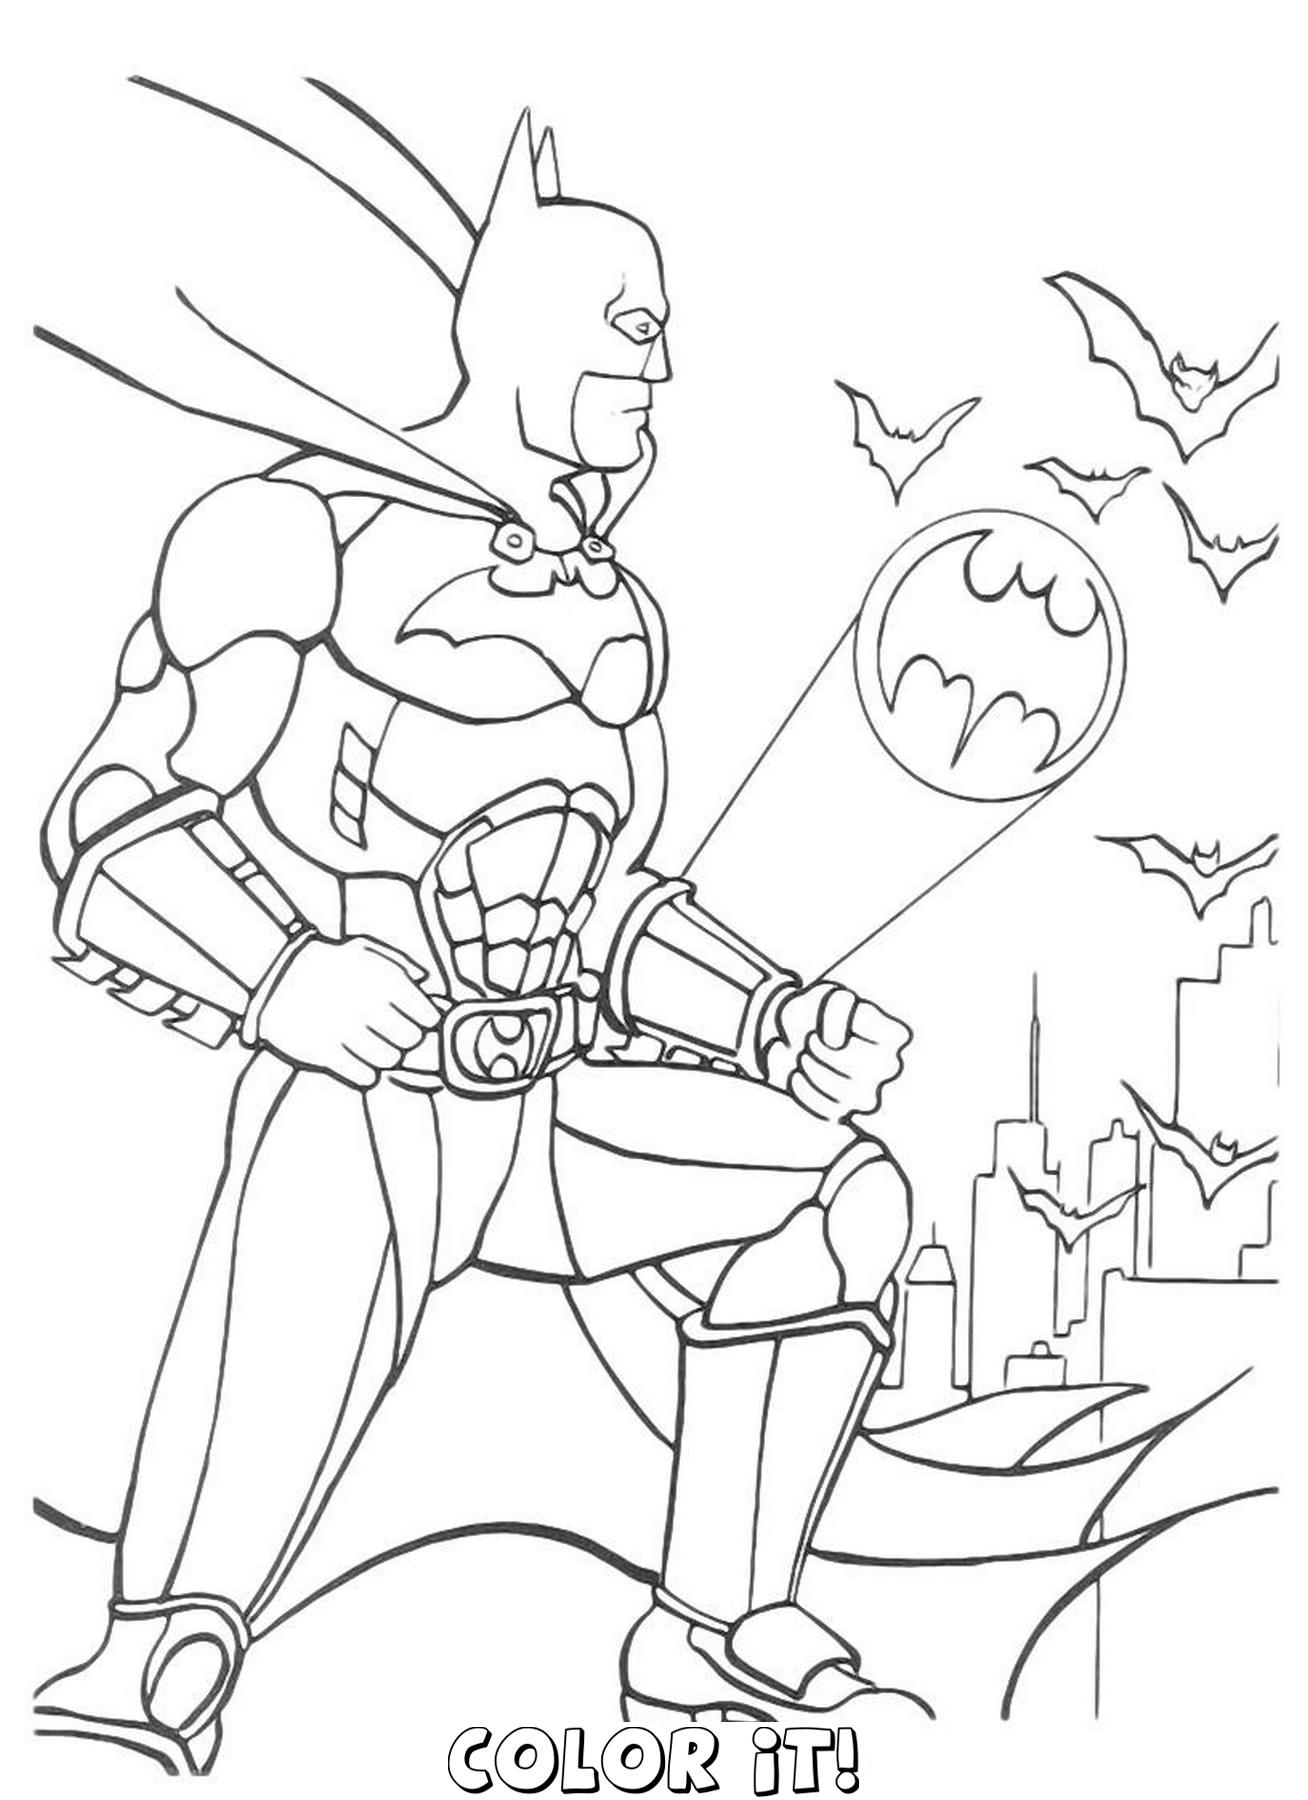 batman and robin printable coloring pages batman and robin coloring pages to download and print for free coloring printable robin and pages batman